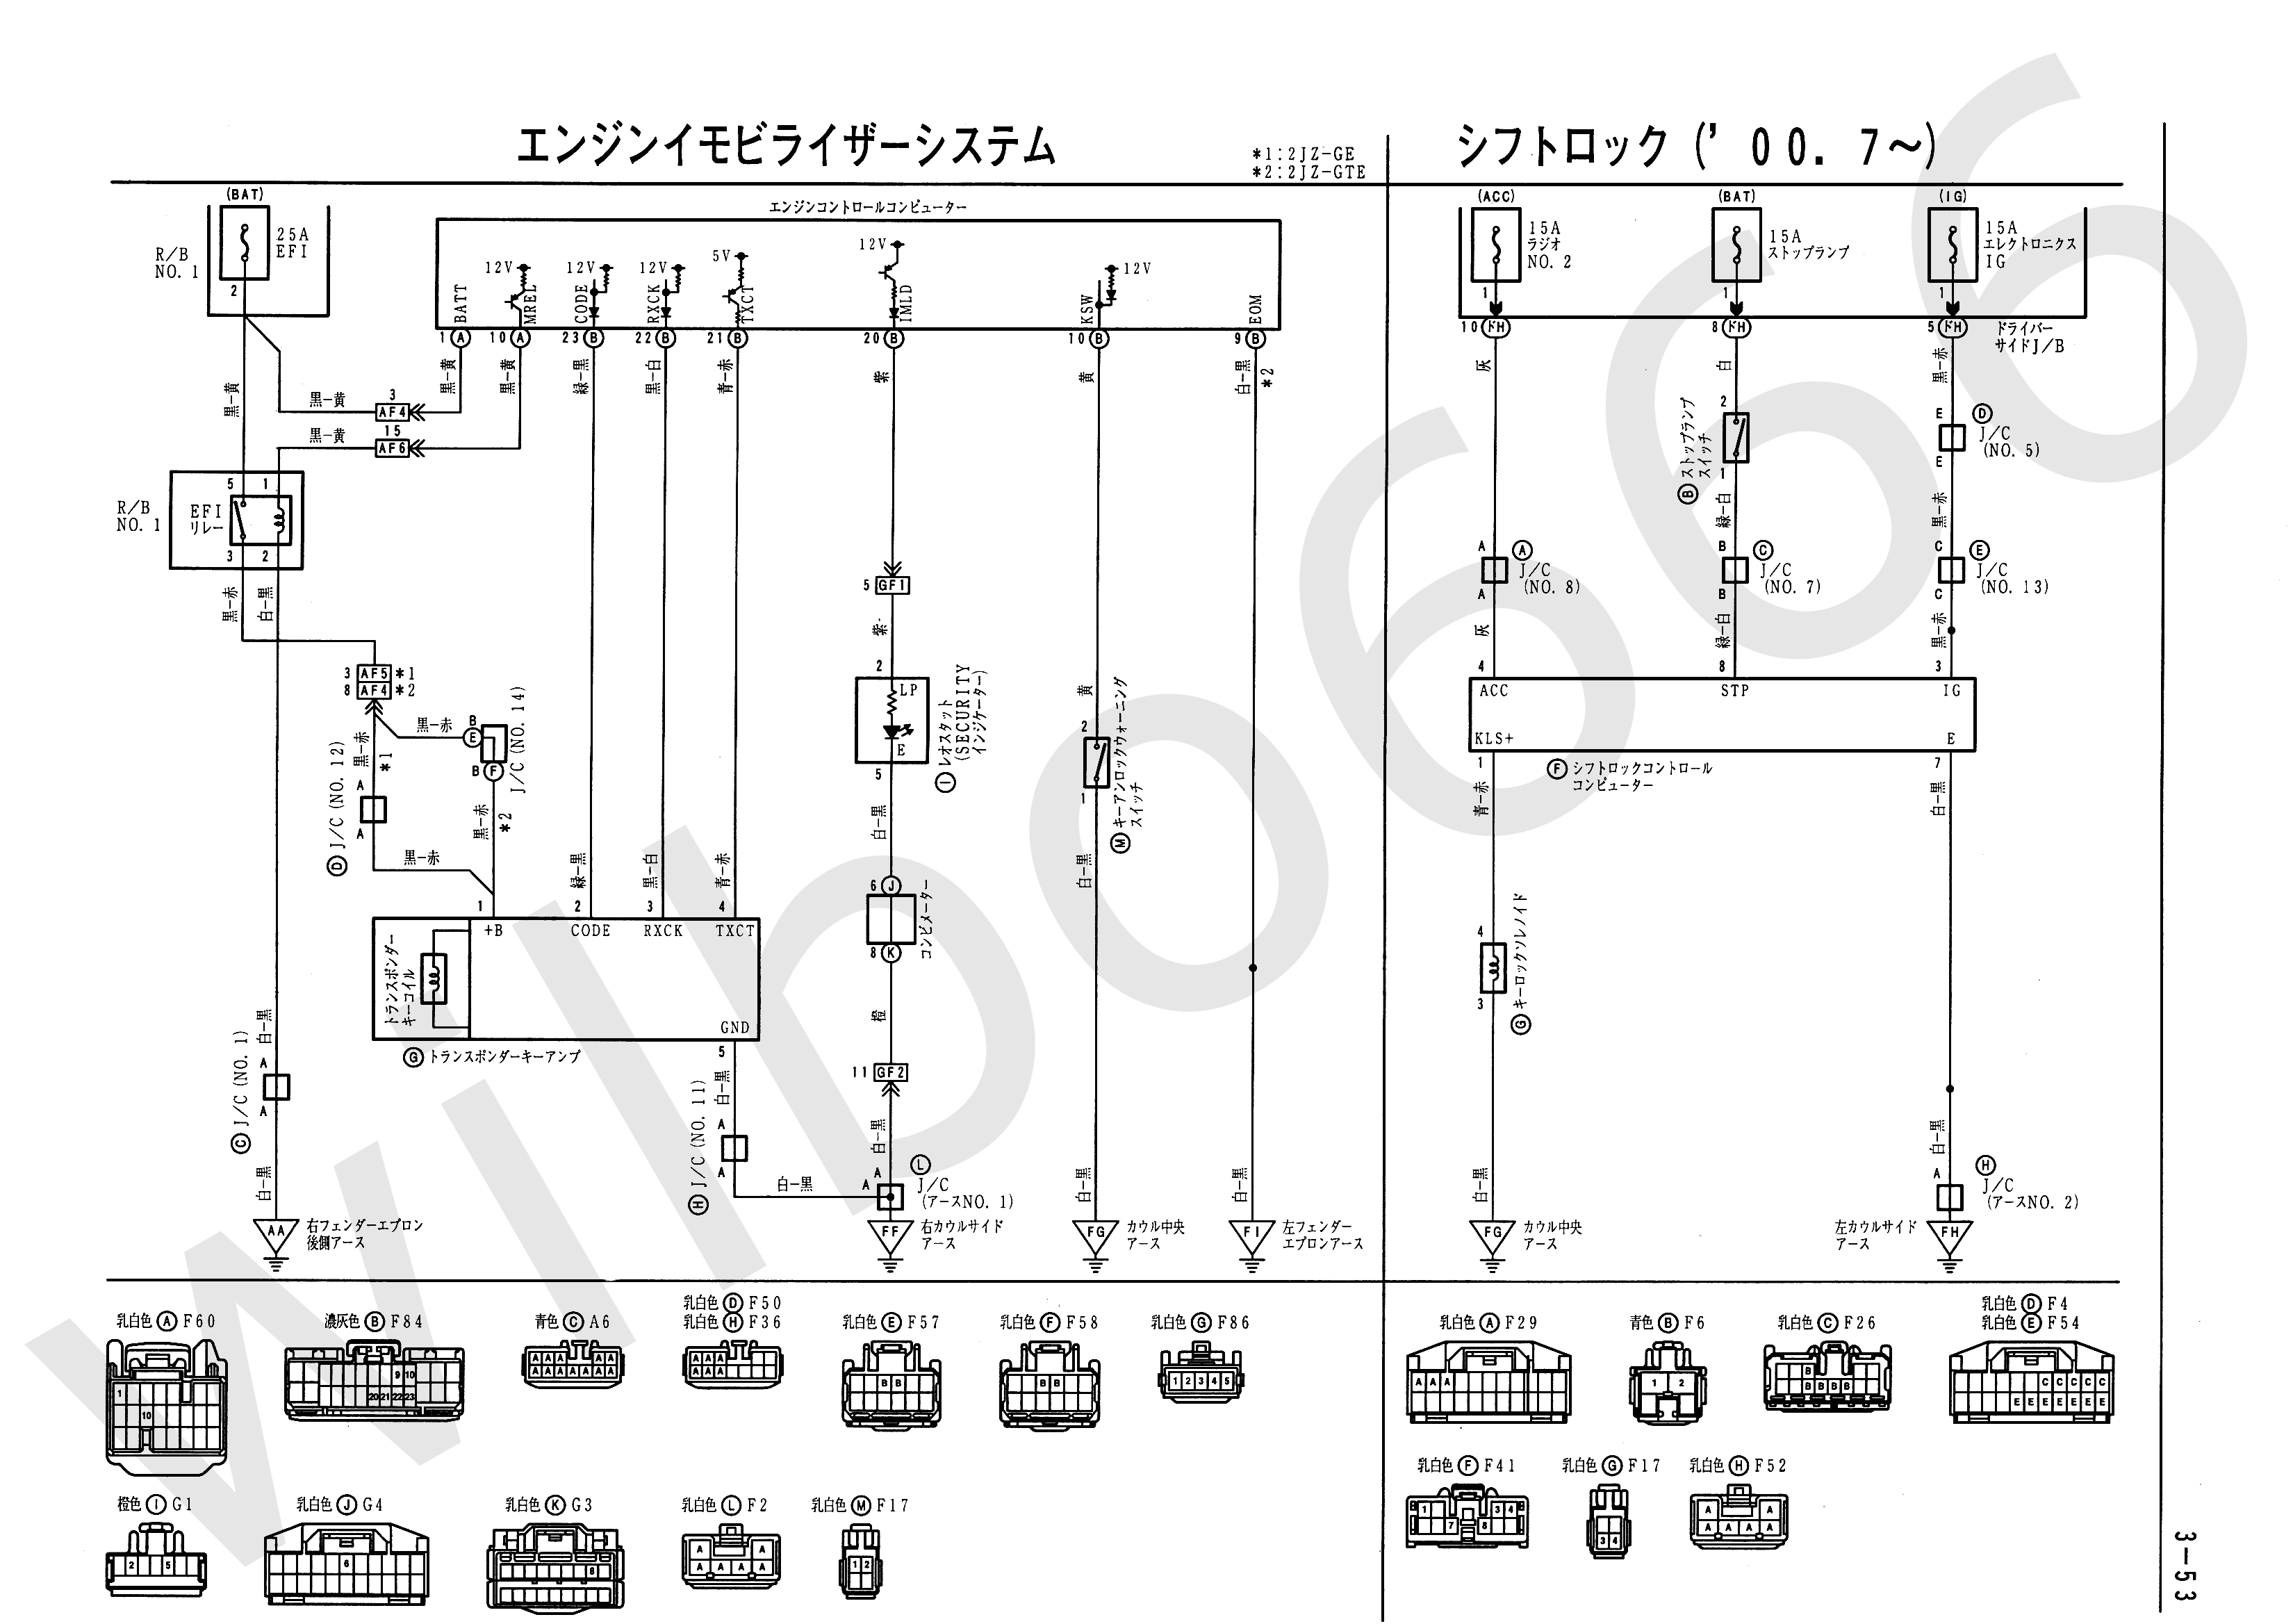 JZS161 Electrical Wiring Diagram 6748505 3 53 apexi vafc wiring diagram apexi vafc wiring diagram at webbmarketing.co